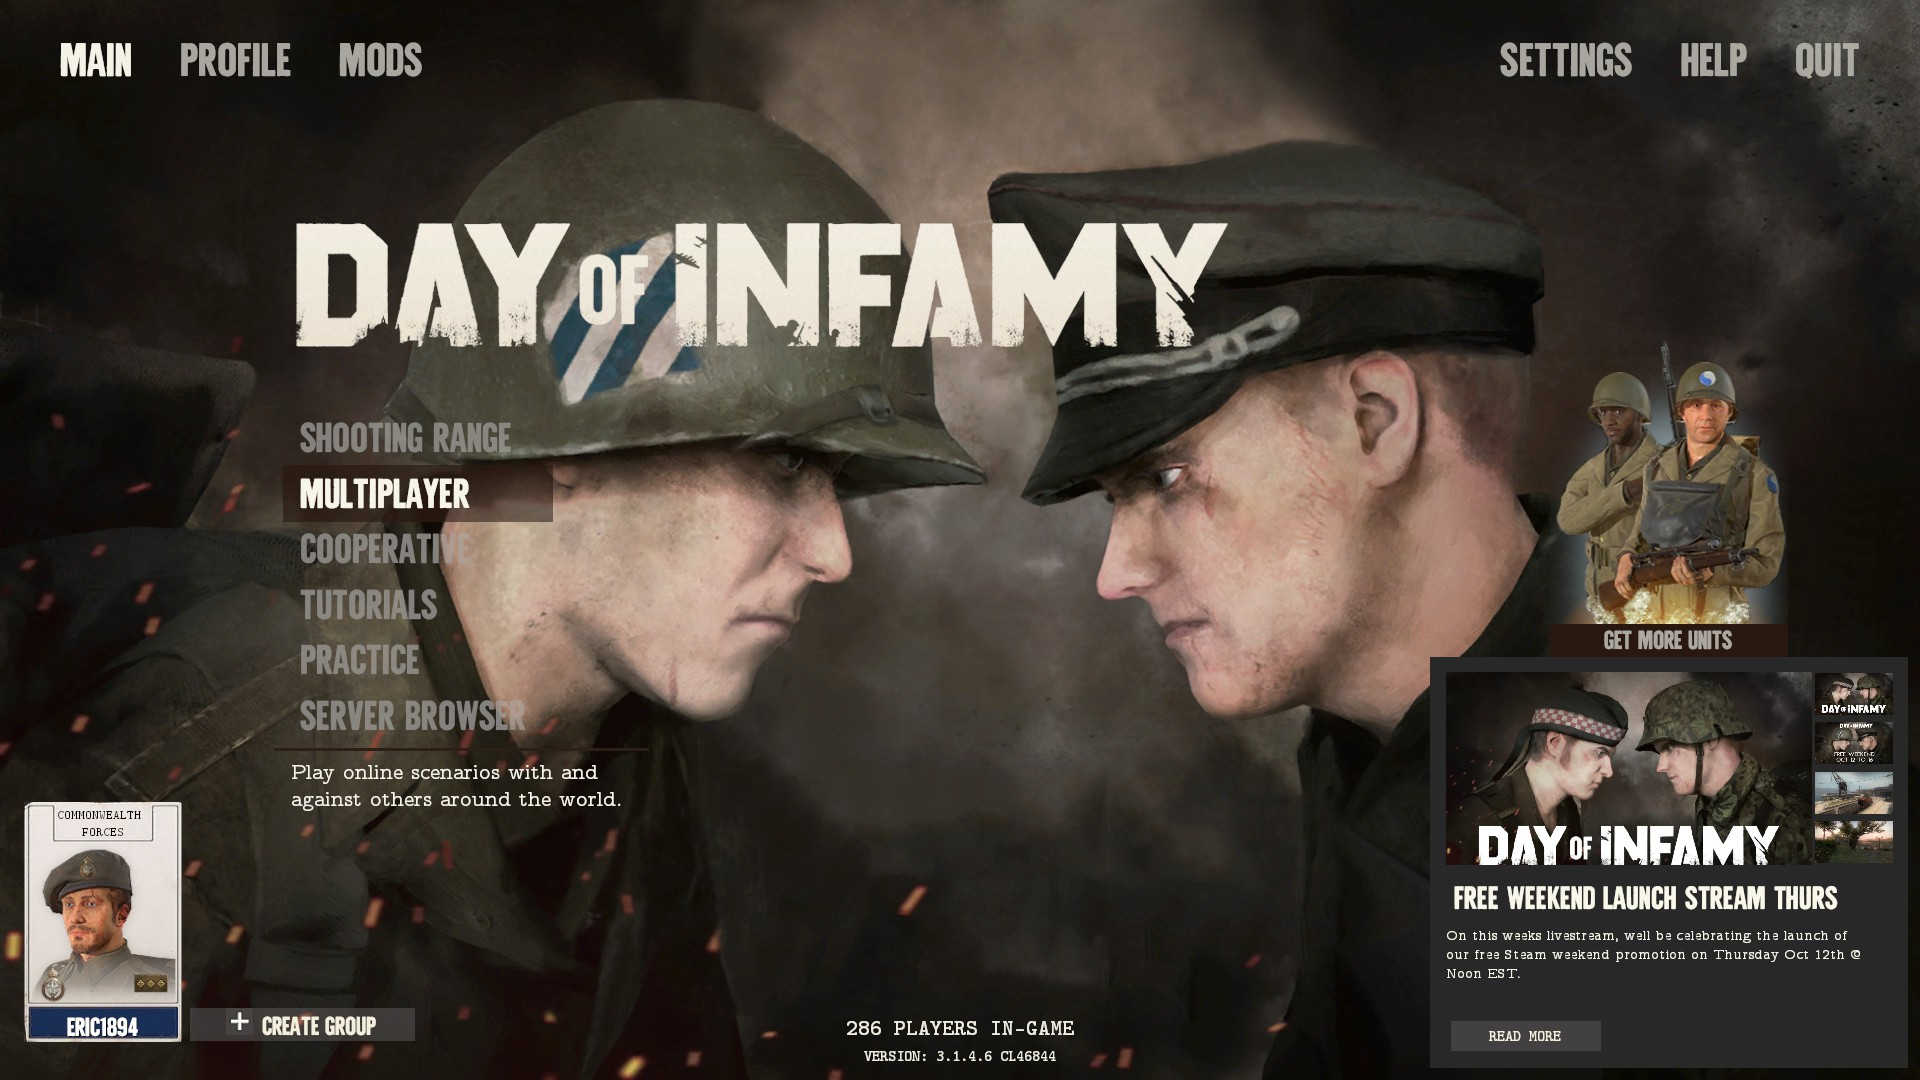 Day of Infamy Mod Picks! | New World Interactive